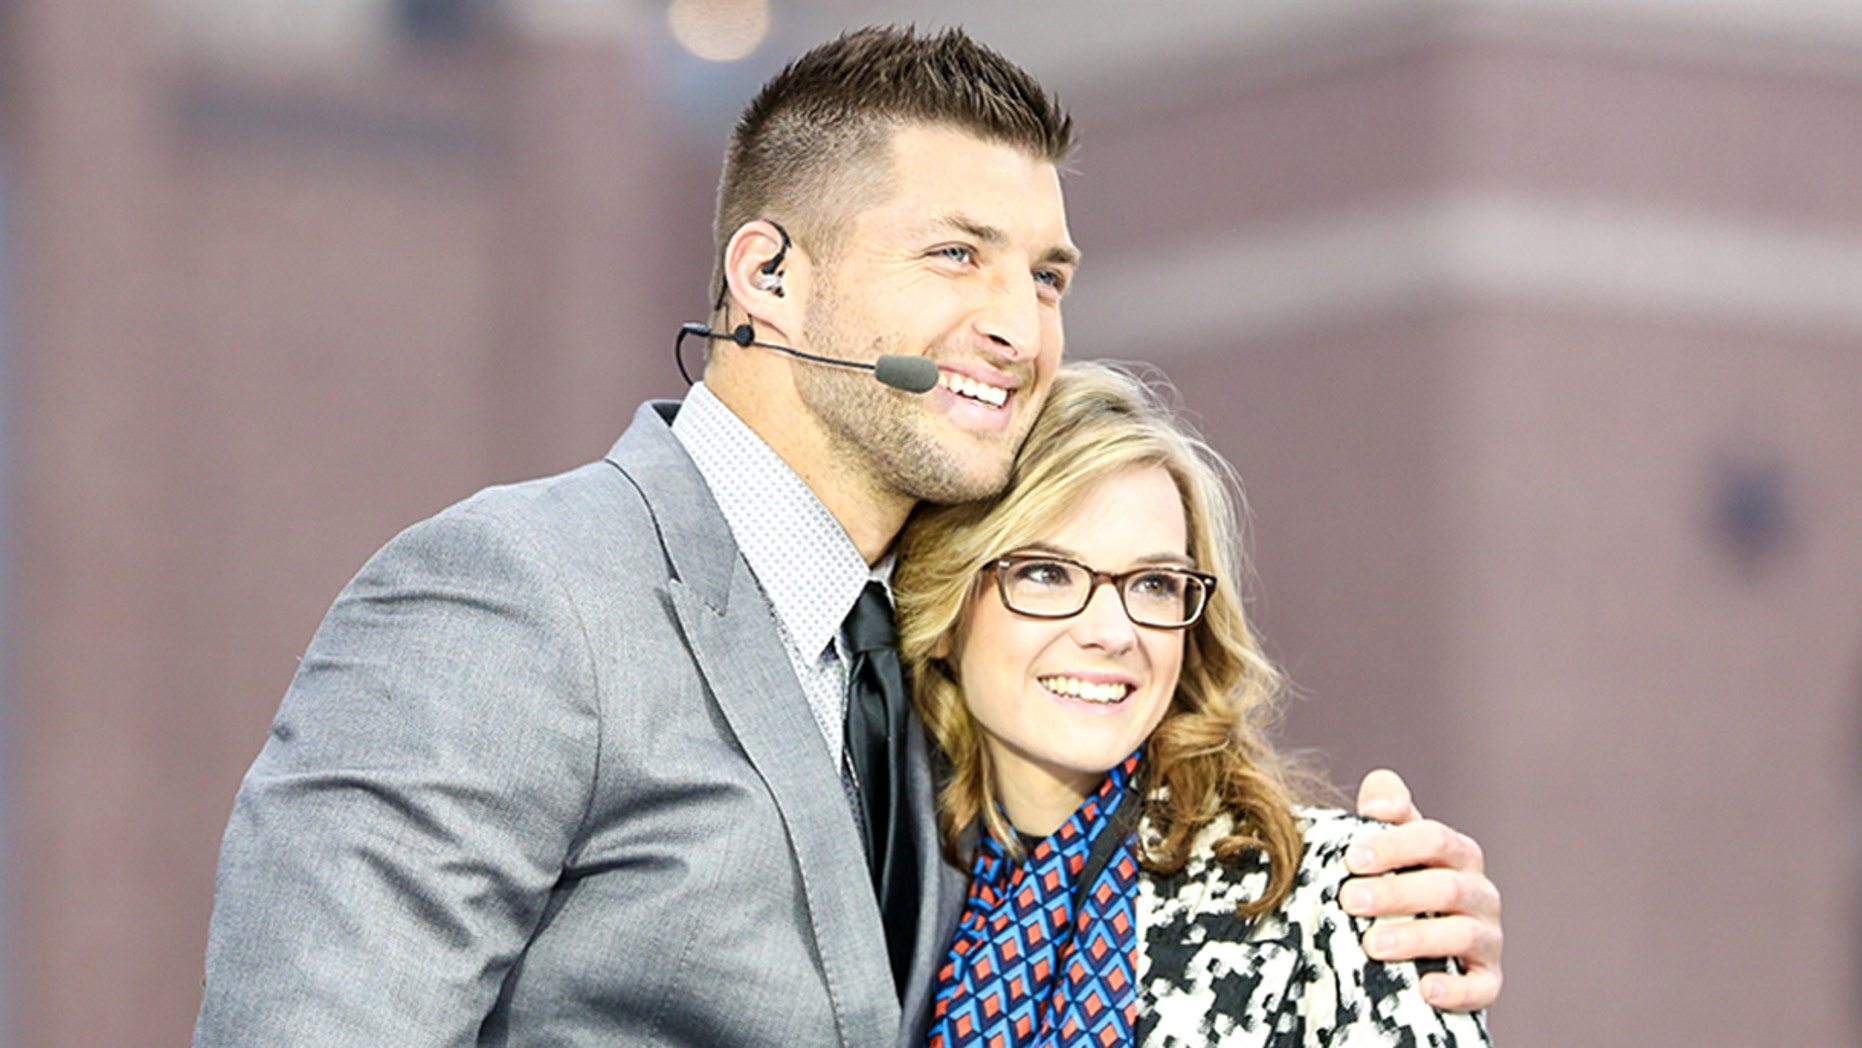 Tim Tebow and Chelsie Watts embraced during her weekend wish with the outspoke Christian athlete.